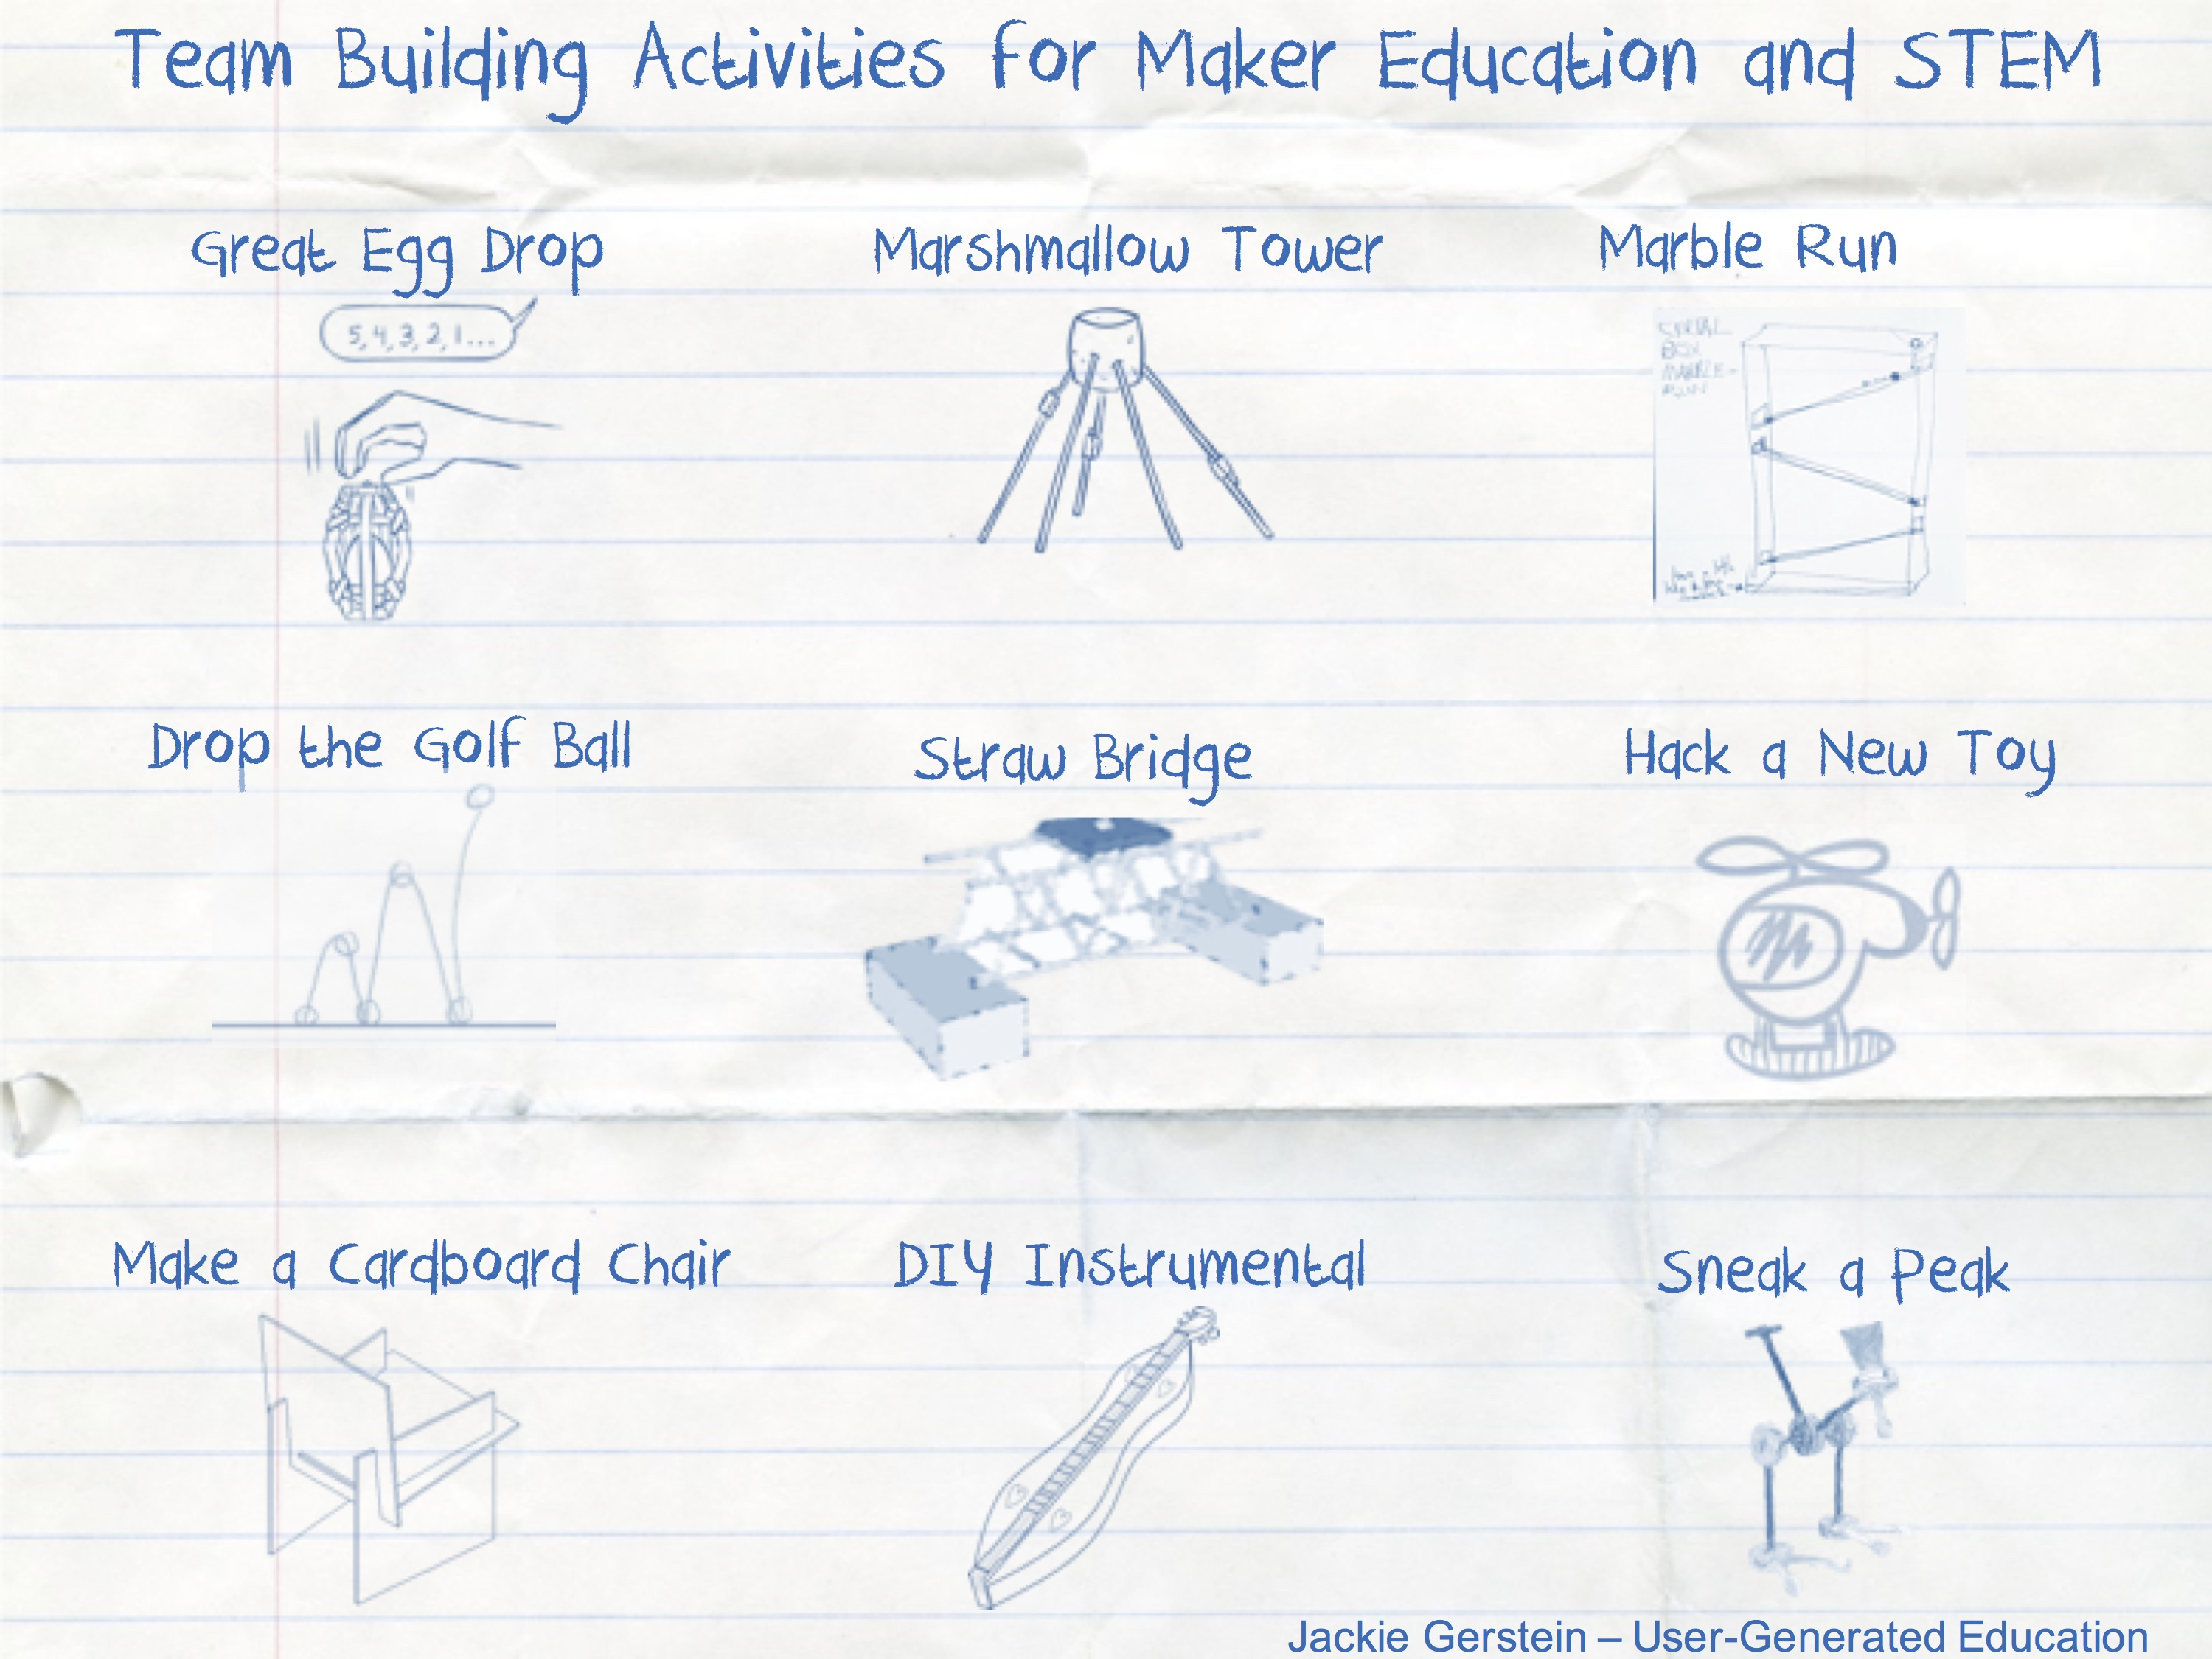 Team Building Activities That Support Maker Education, STEM, and ...